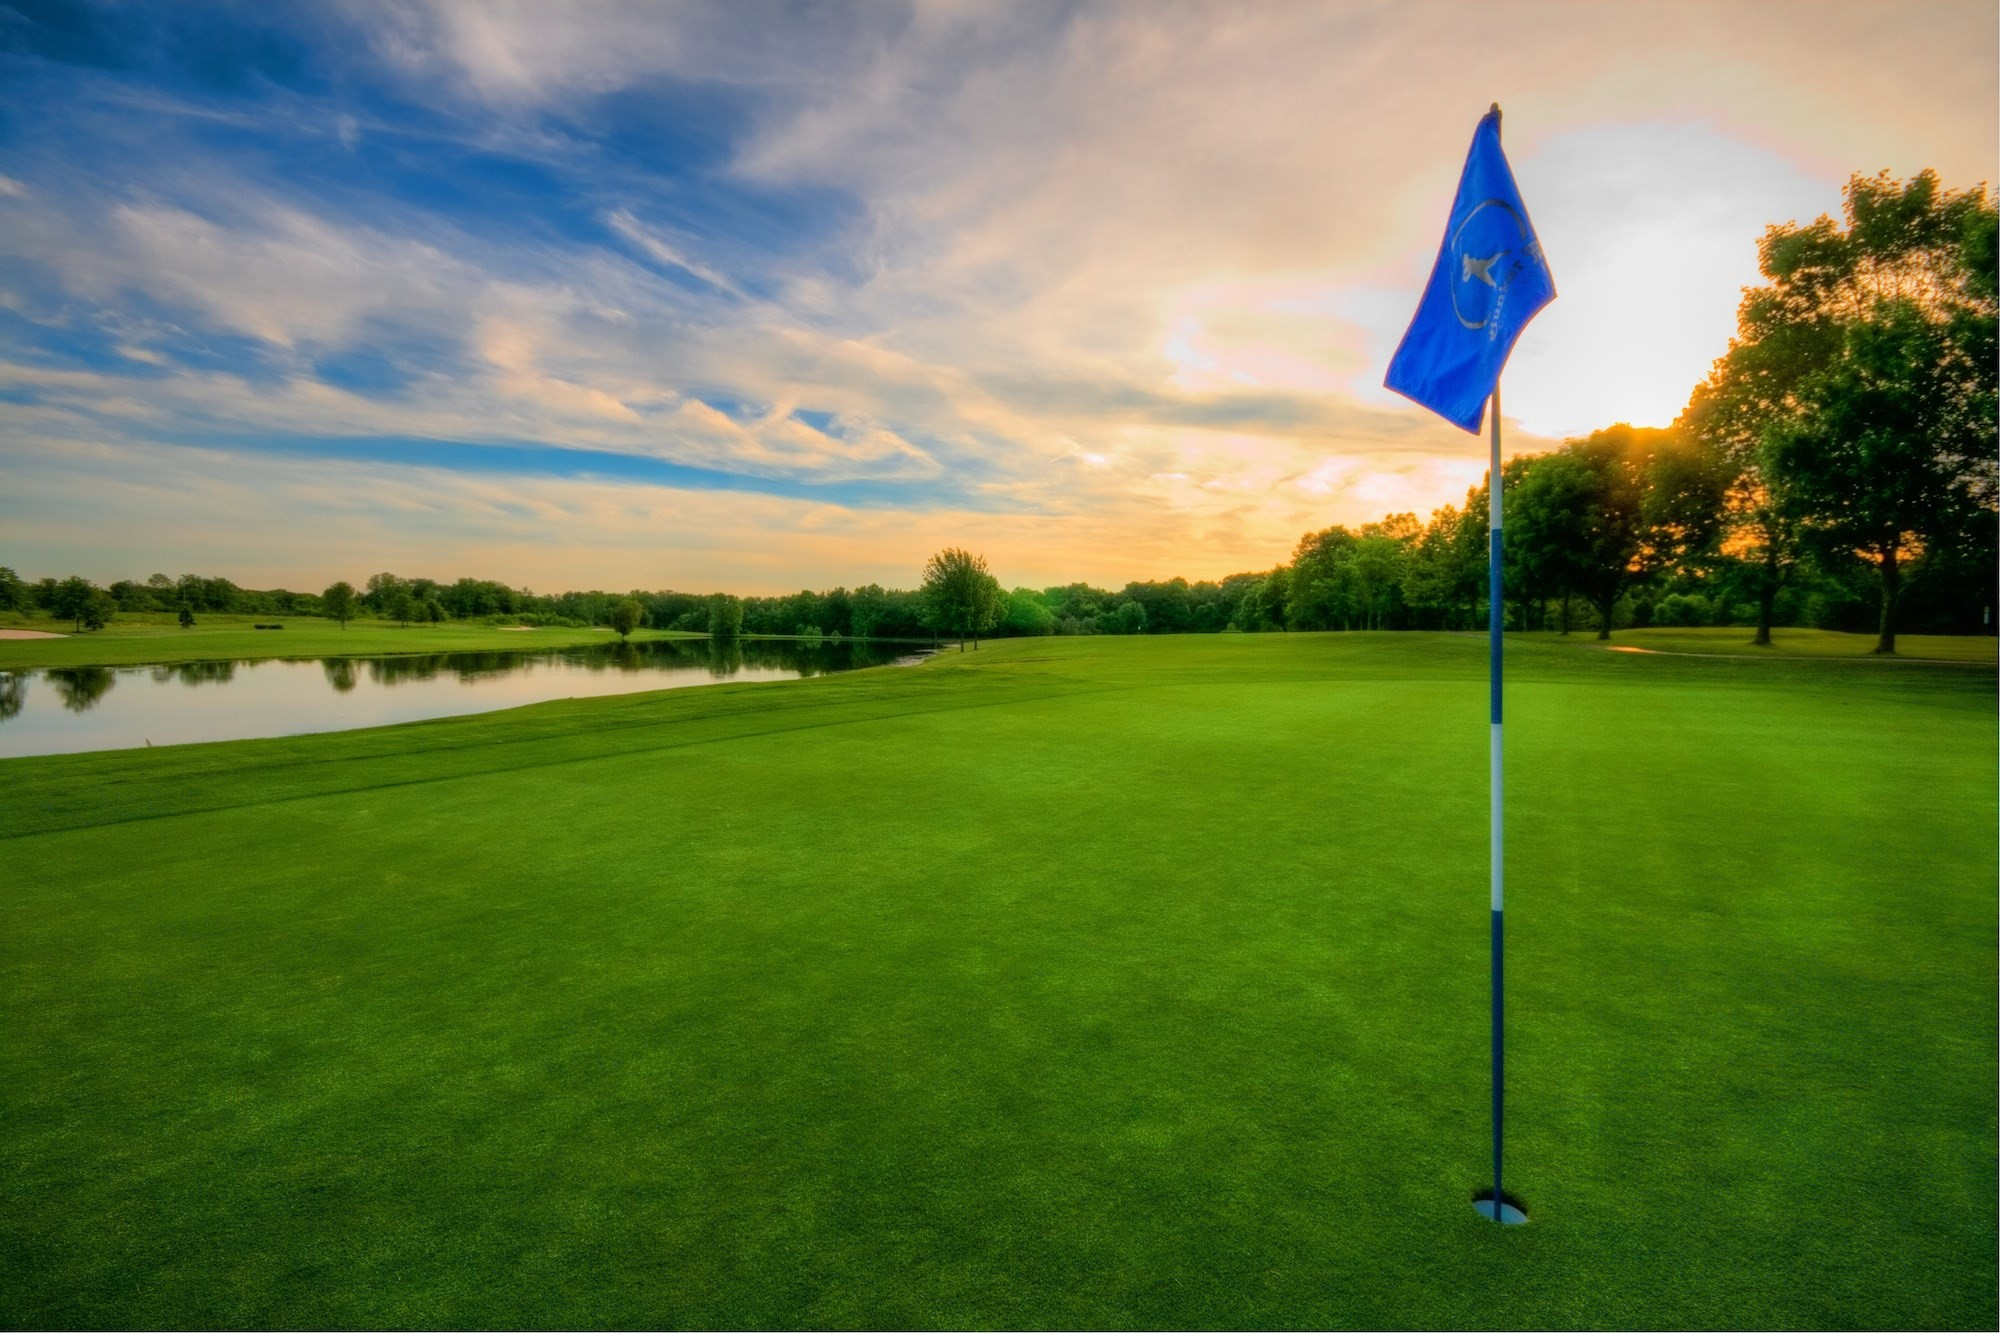 golf background images  45  images